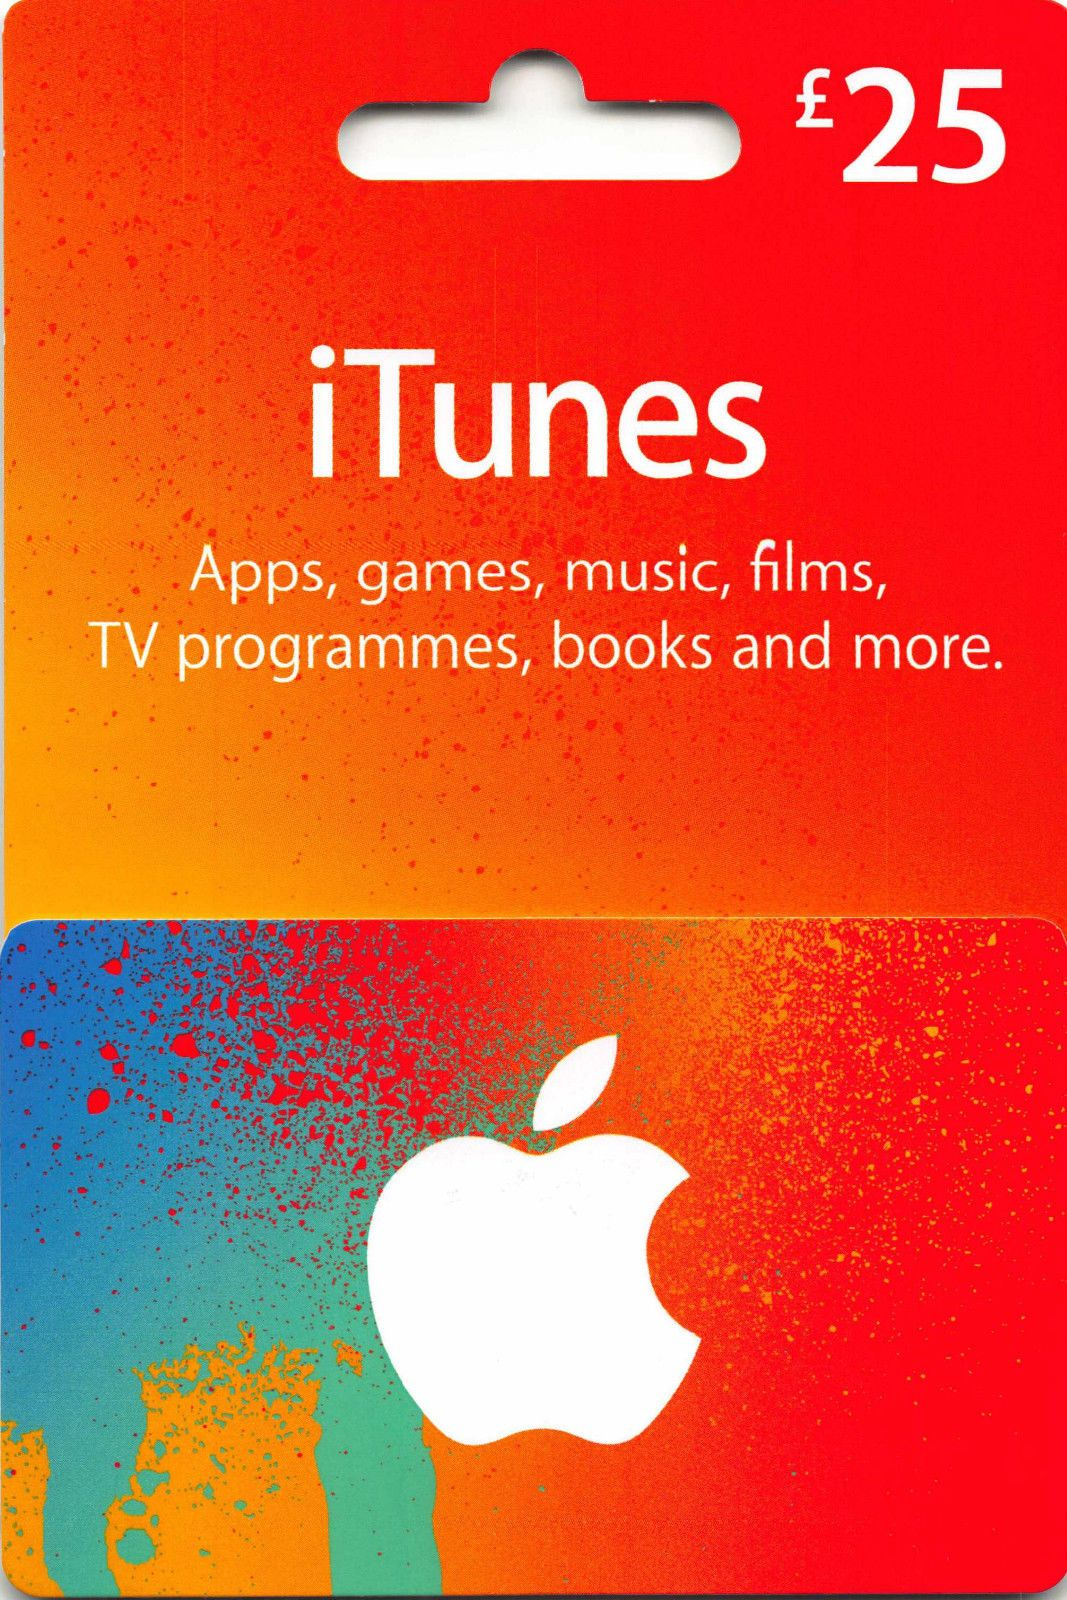 Apple itunes 25gbp gift card for sale online ebay free